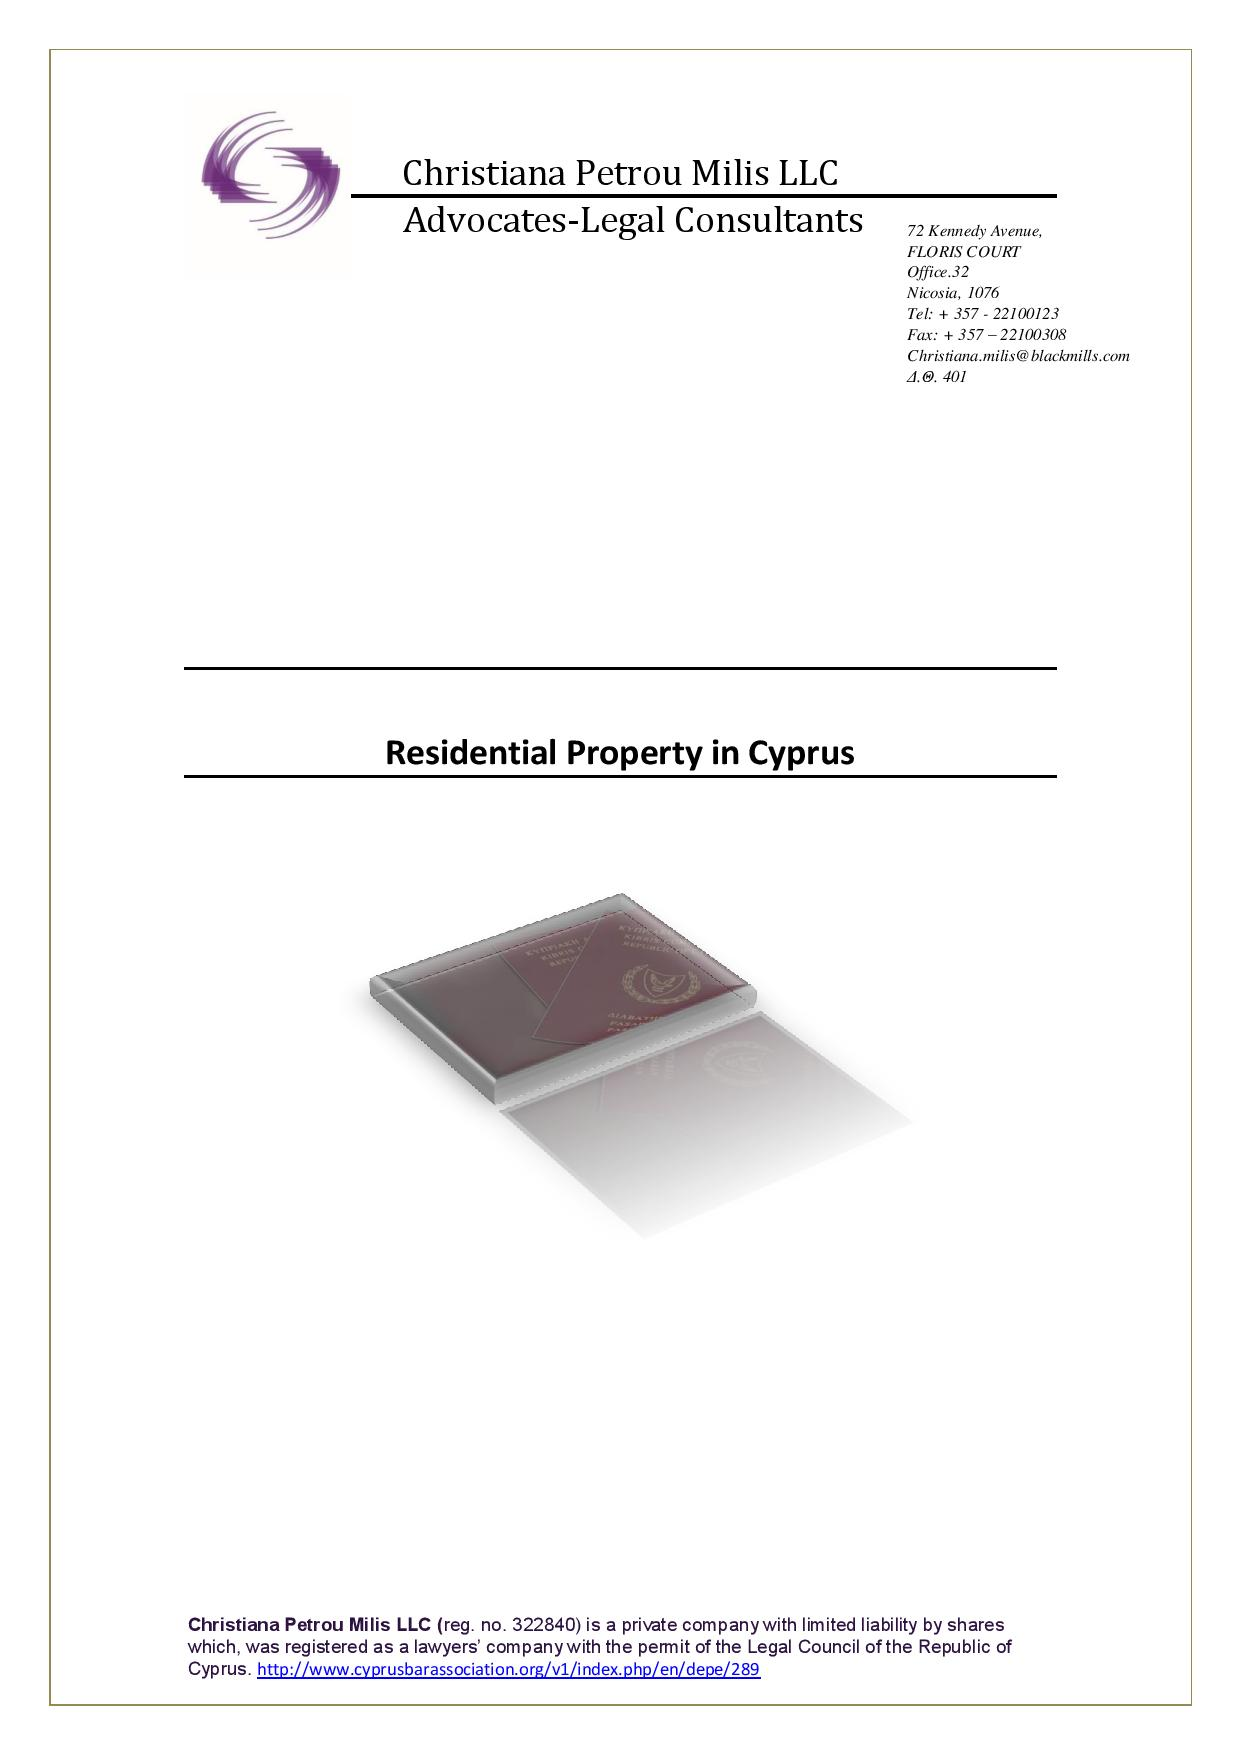 Residential Property in Cyprus